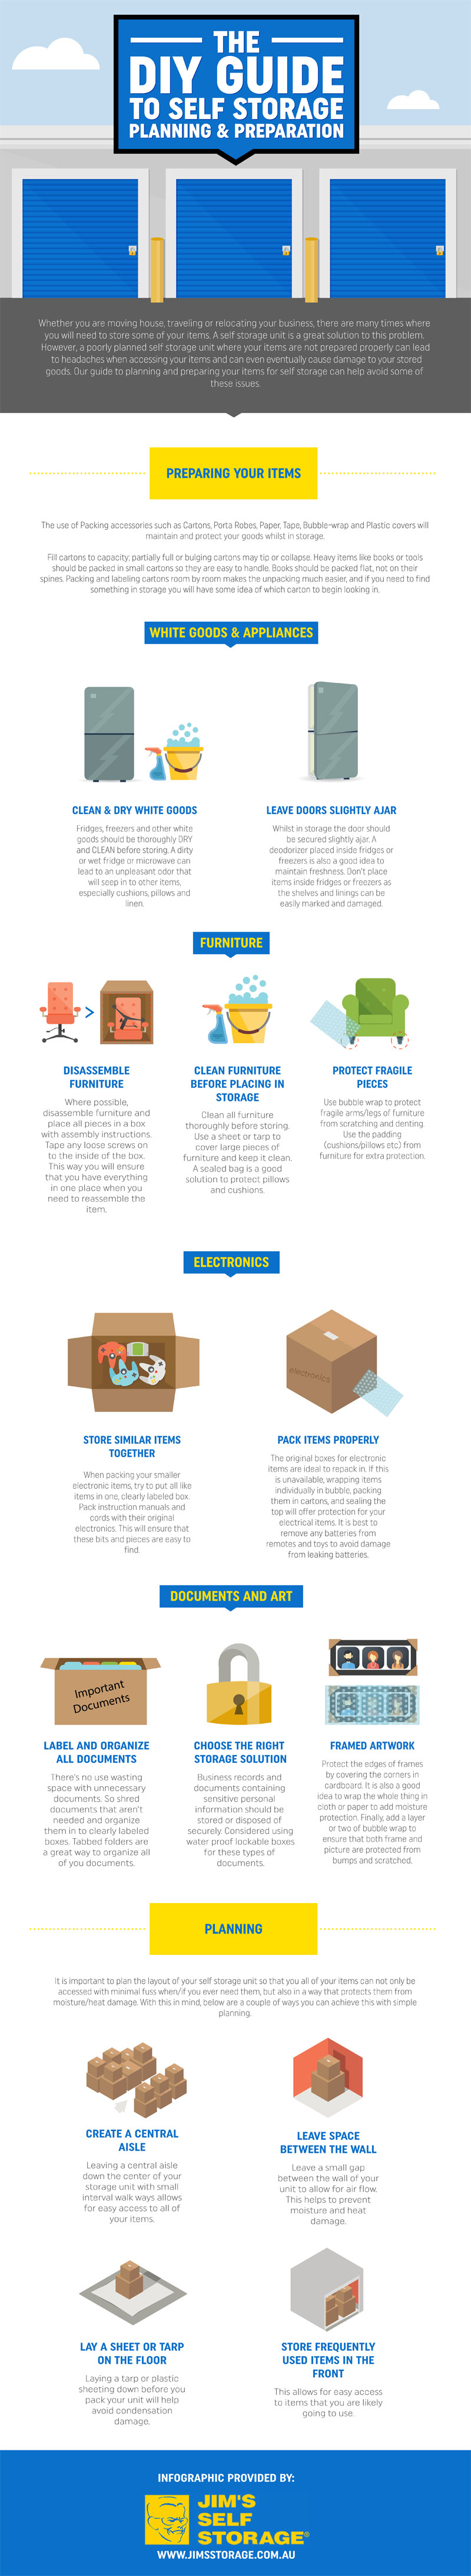 The DIY Self Storage Guide